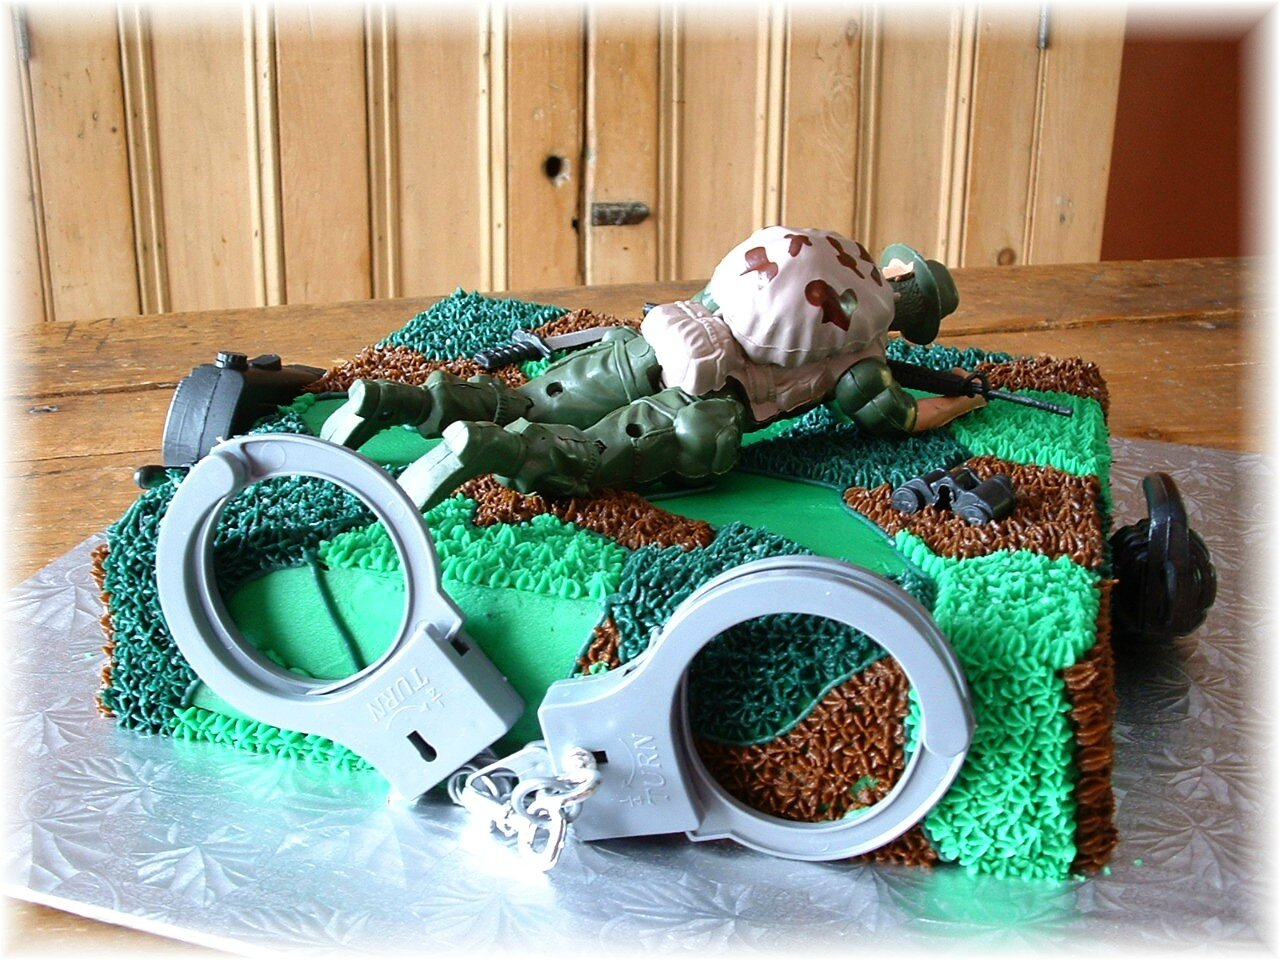 Call of duty cake 2